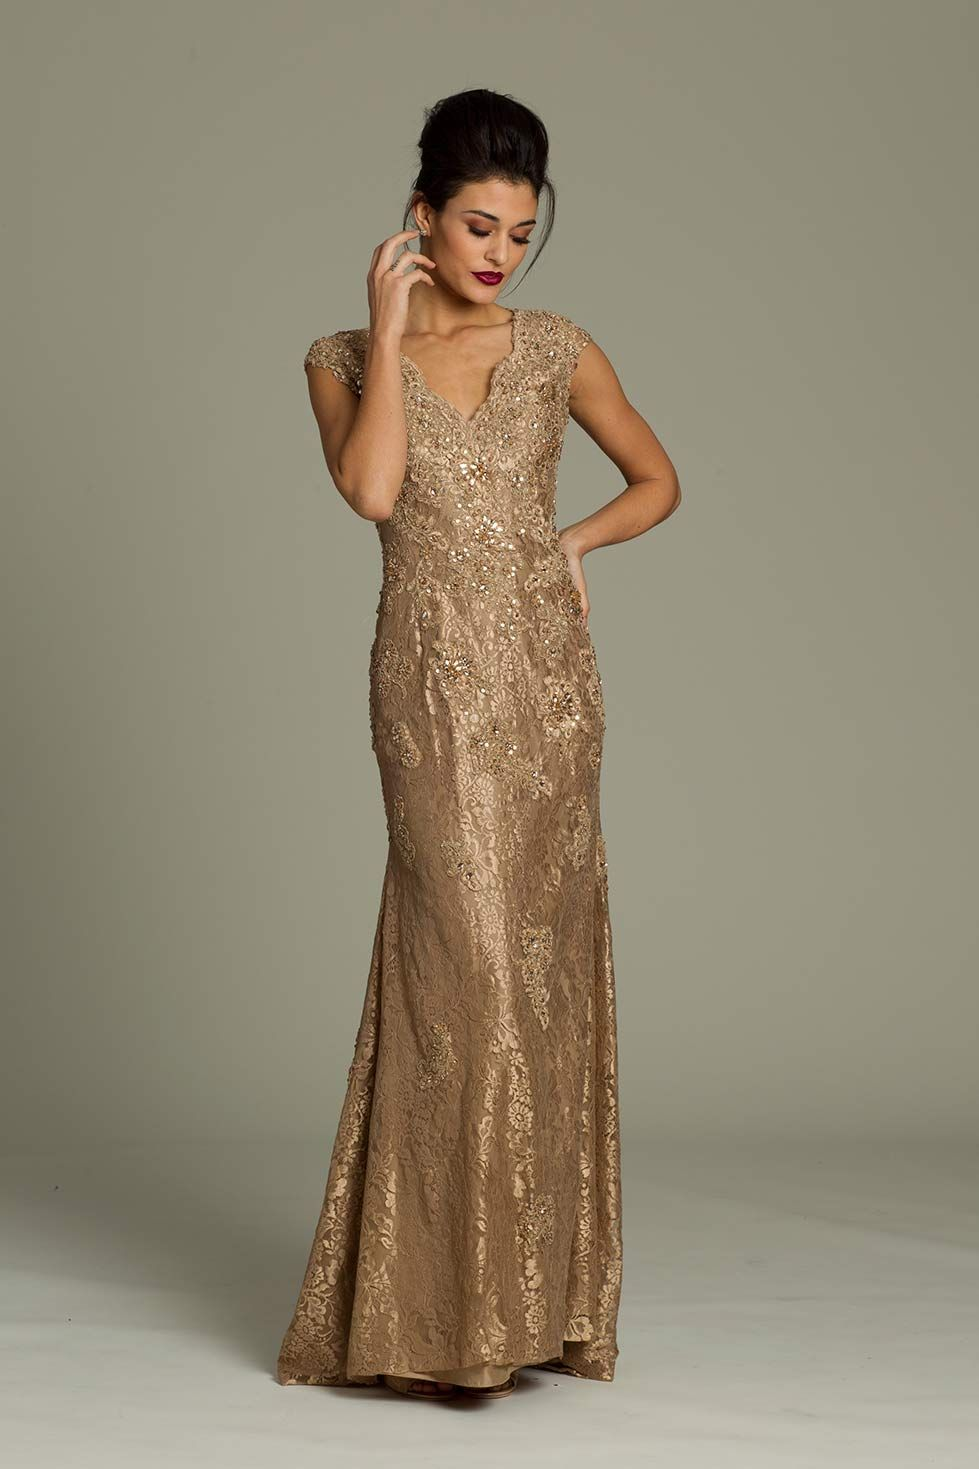 666a11e6b675 Mother of the Bride Dress - Jovani long lace gown | Gold Wedding ...